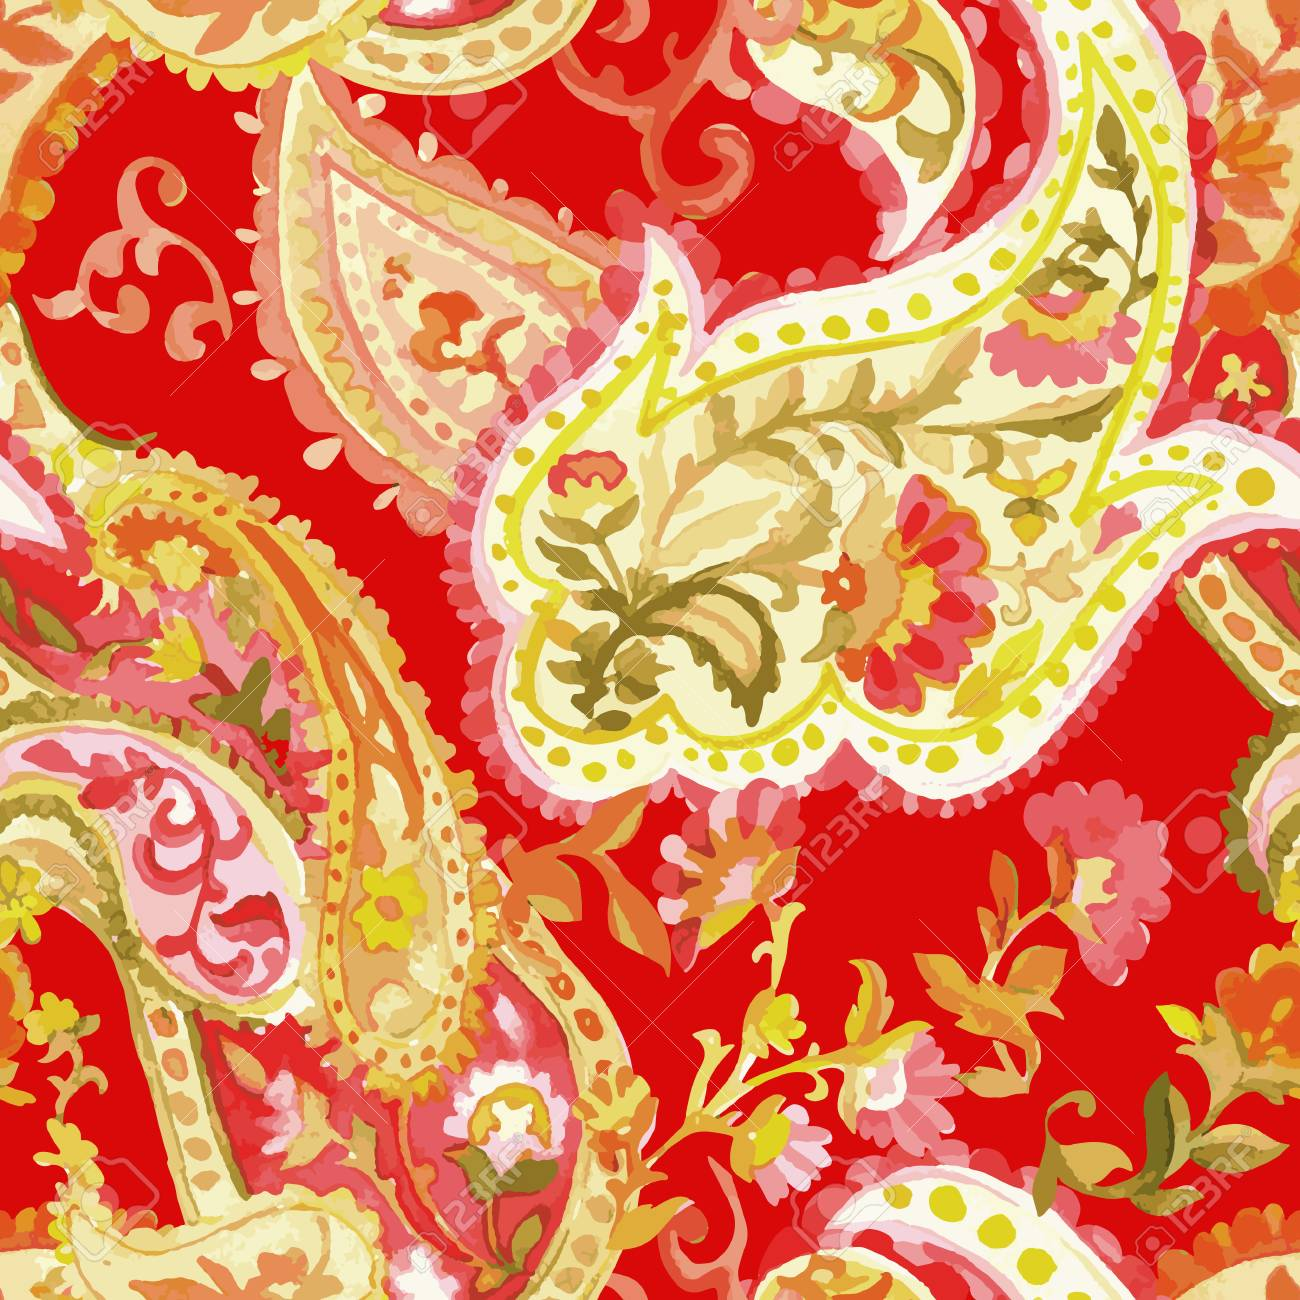 Watercolor Paisley Seamless Background on White  Cold Colors